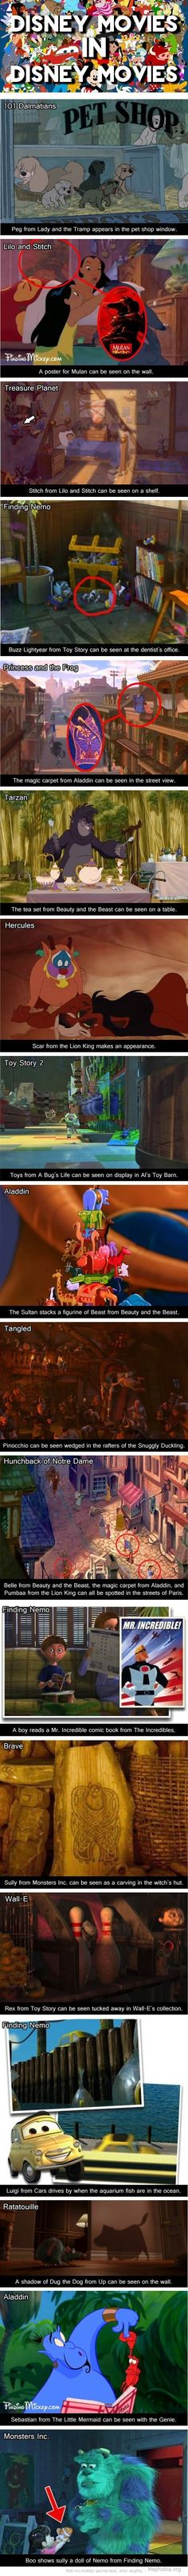 oh my gosh thats amazing!!! I've watched those movies a hundred times and never noticed that!